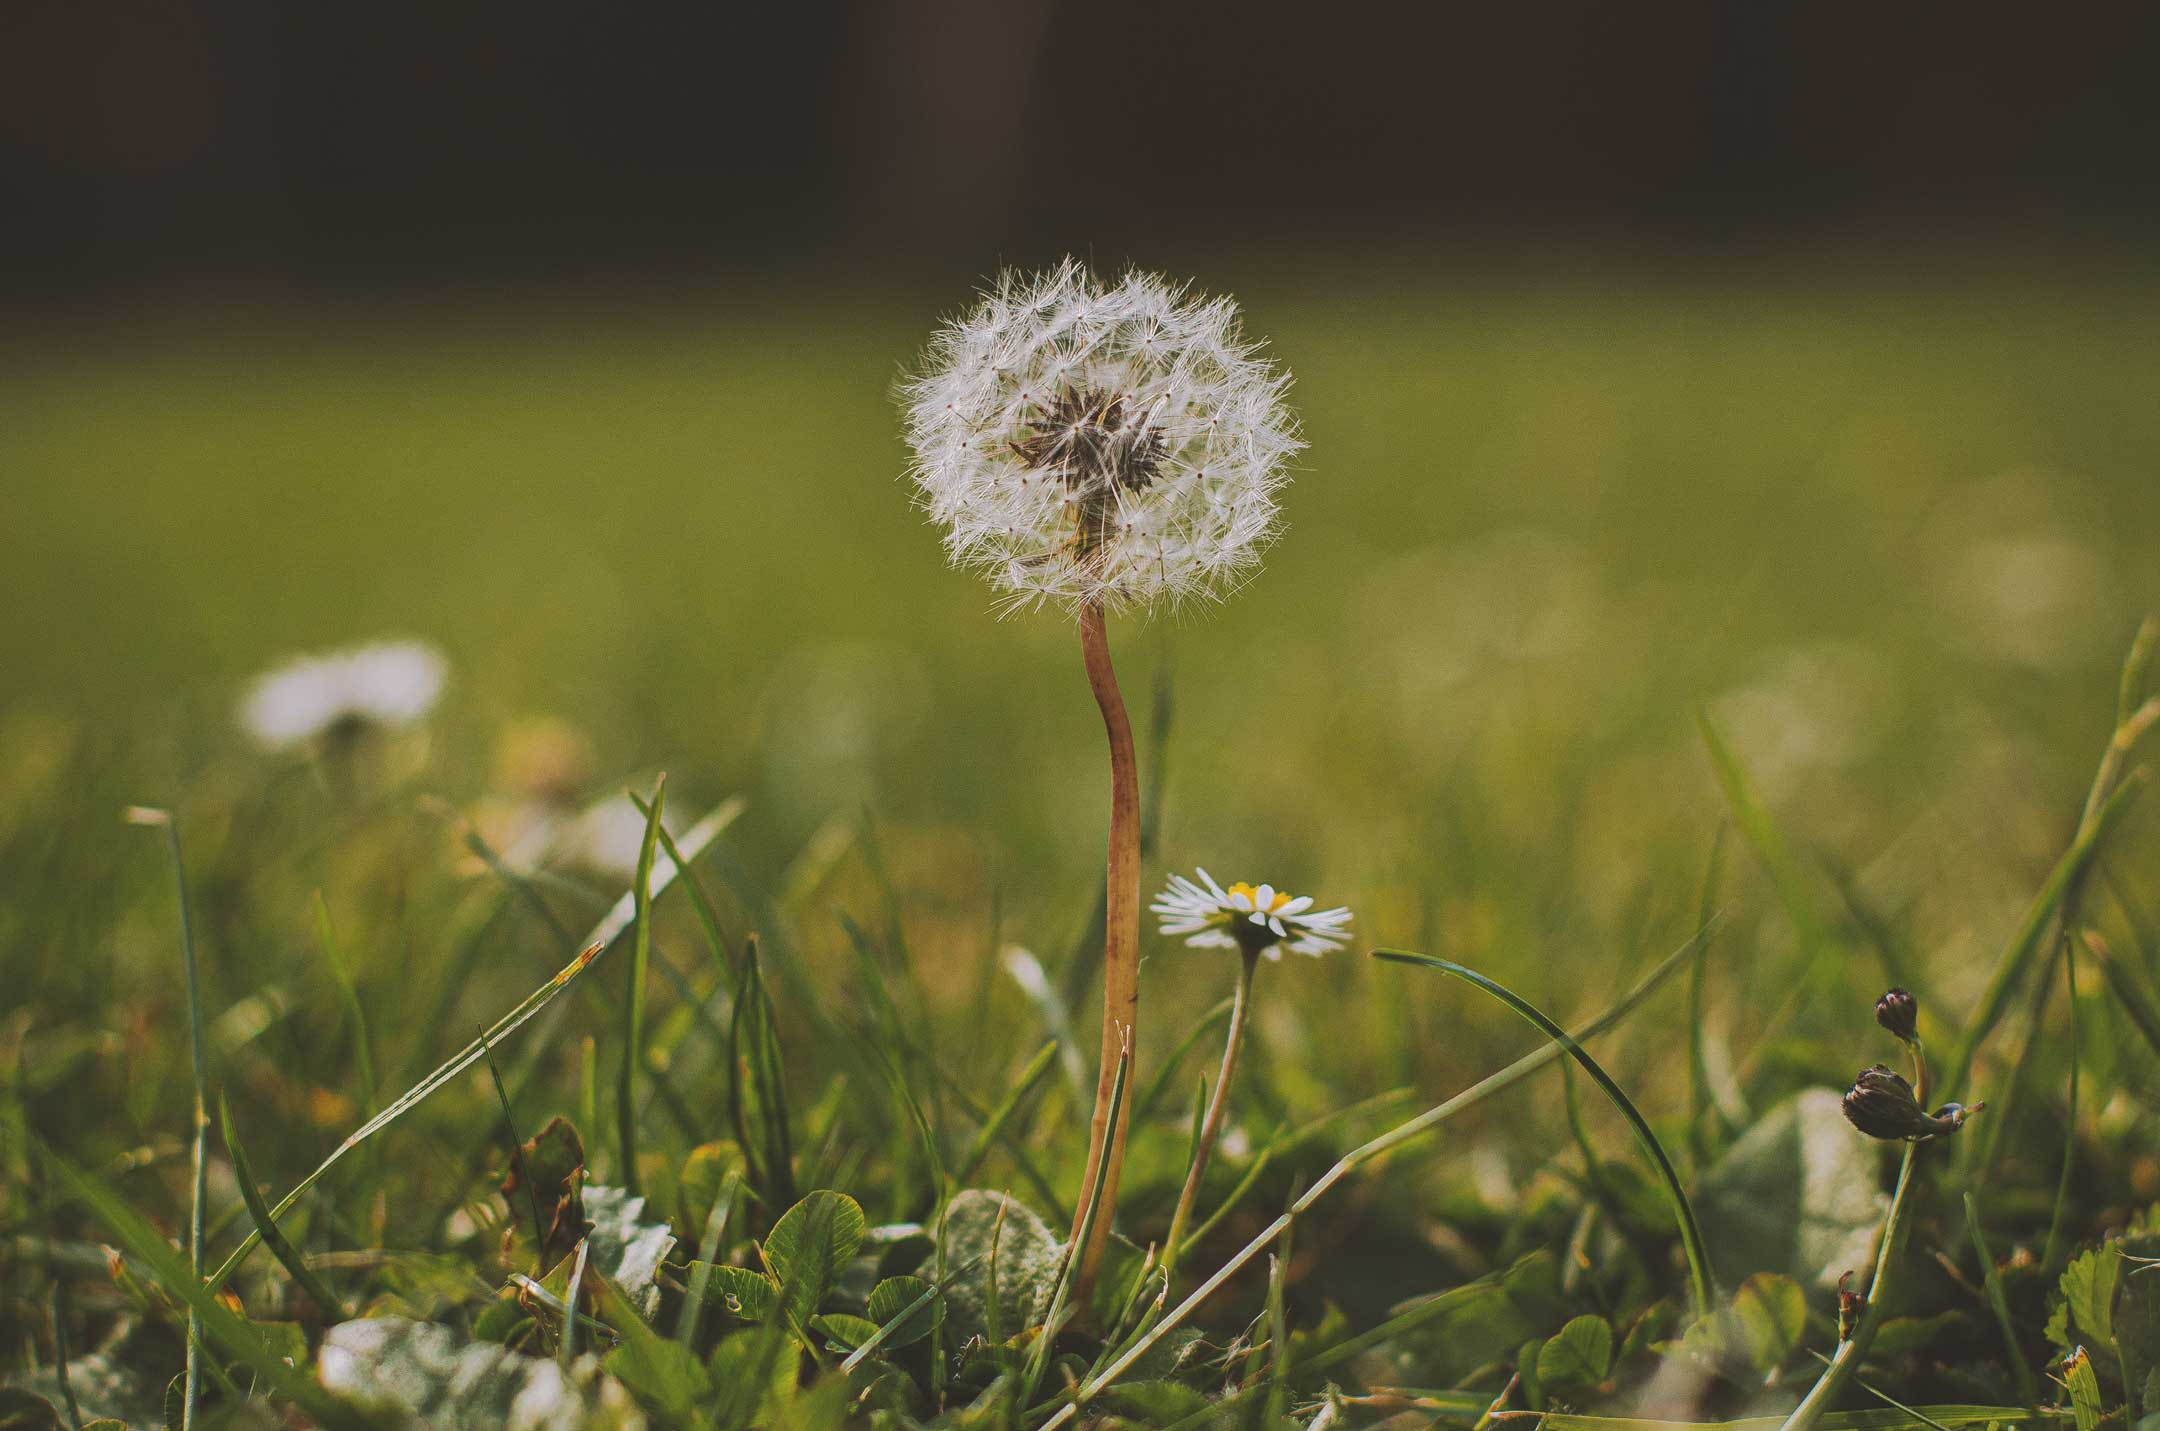 Before Weed Control there is a single Dandelion allowed to grow so implement Pre & Post Emergent Weed Control​ services